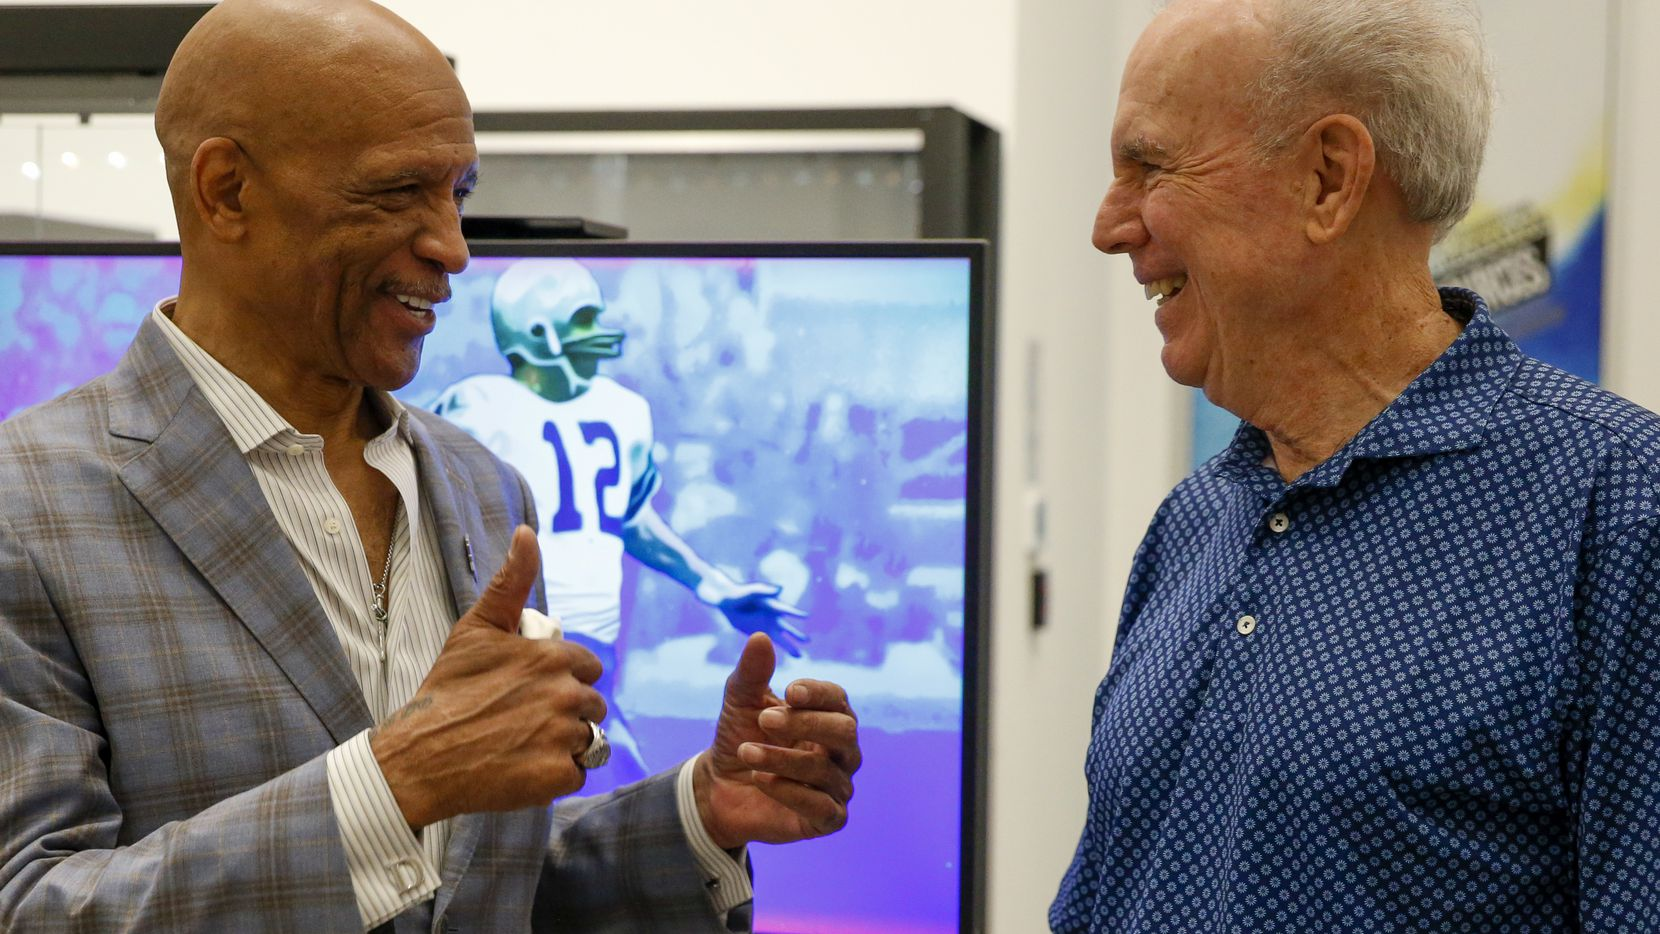 Former Dallas Cowboys players Drew Pearson (left) and Roger Staubach chat at the unveiling of an NFT depicting their famous Hail Mary play from 1975 at Heritage Auctions on Wednesday, July 21, 2021, in Dallas.